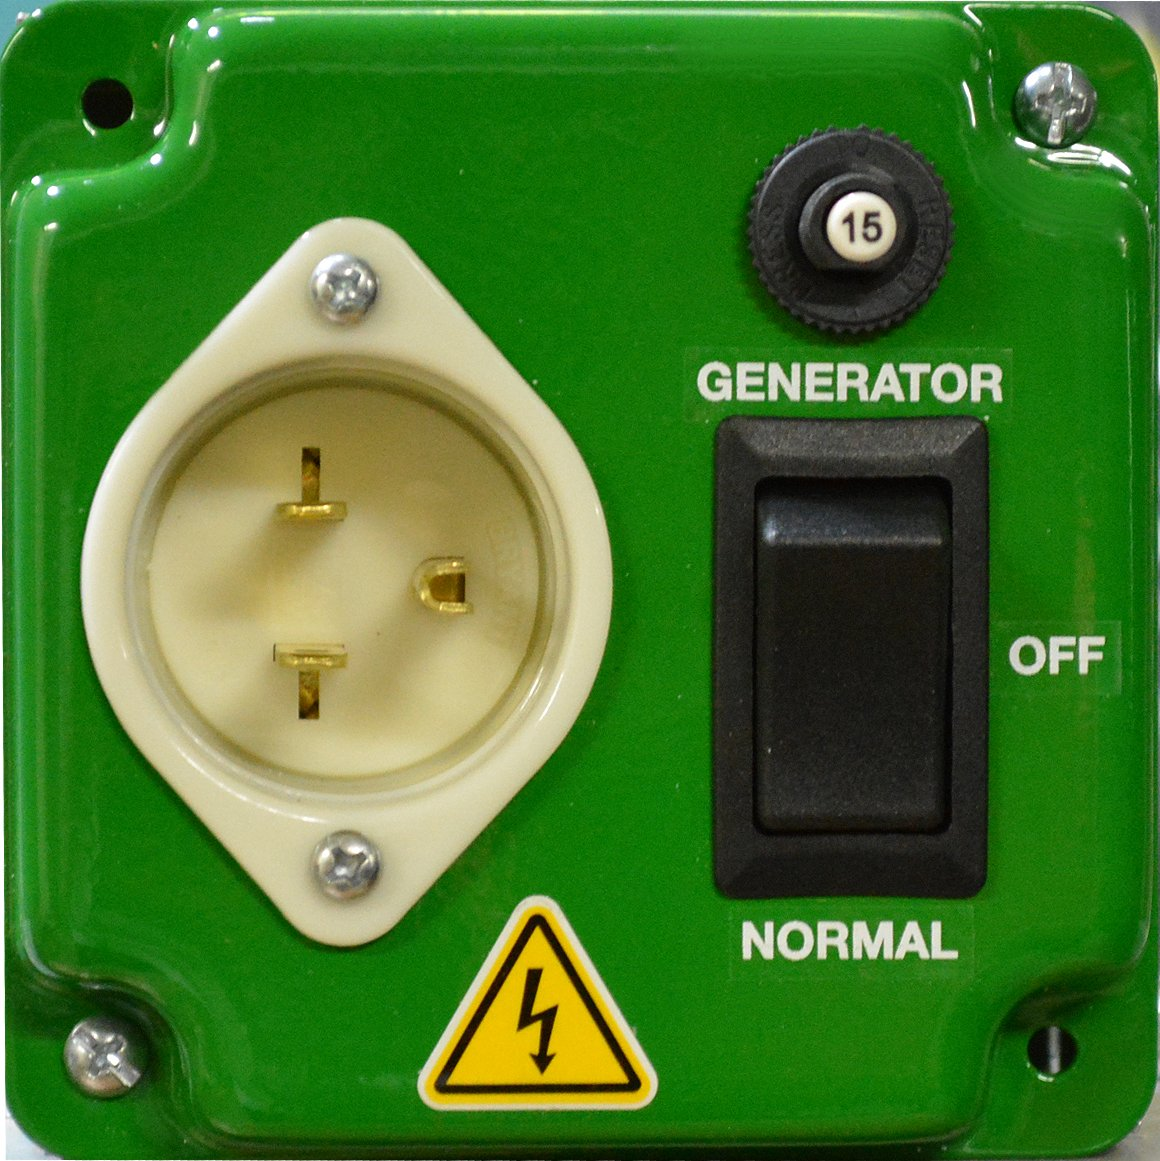 EZ GENERATOR SWITCH - Generator Manual Transfer Switch UNIVERSAL UL/CSA approved by EZ Generator Switch